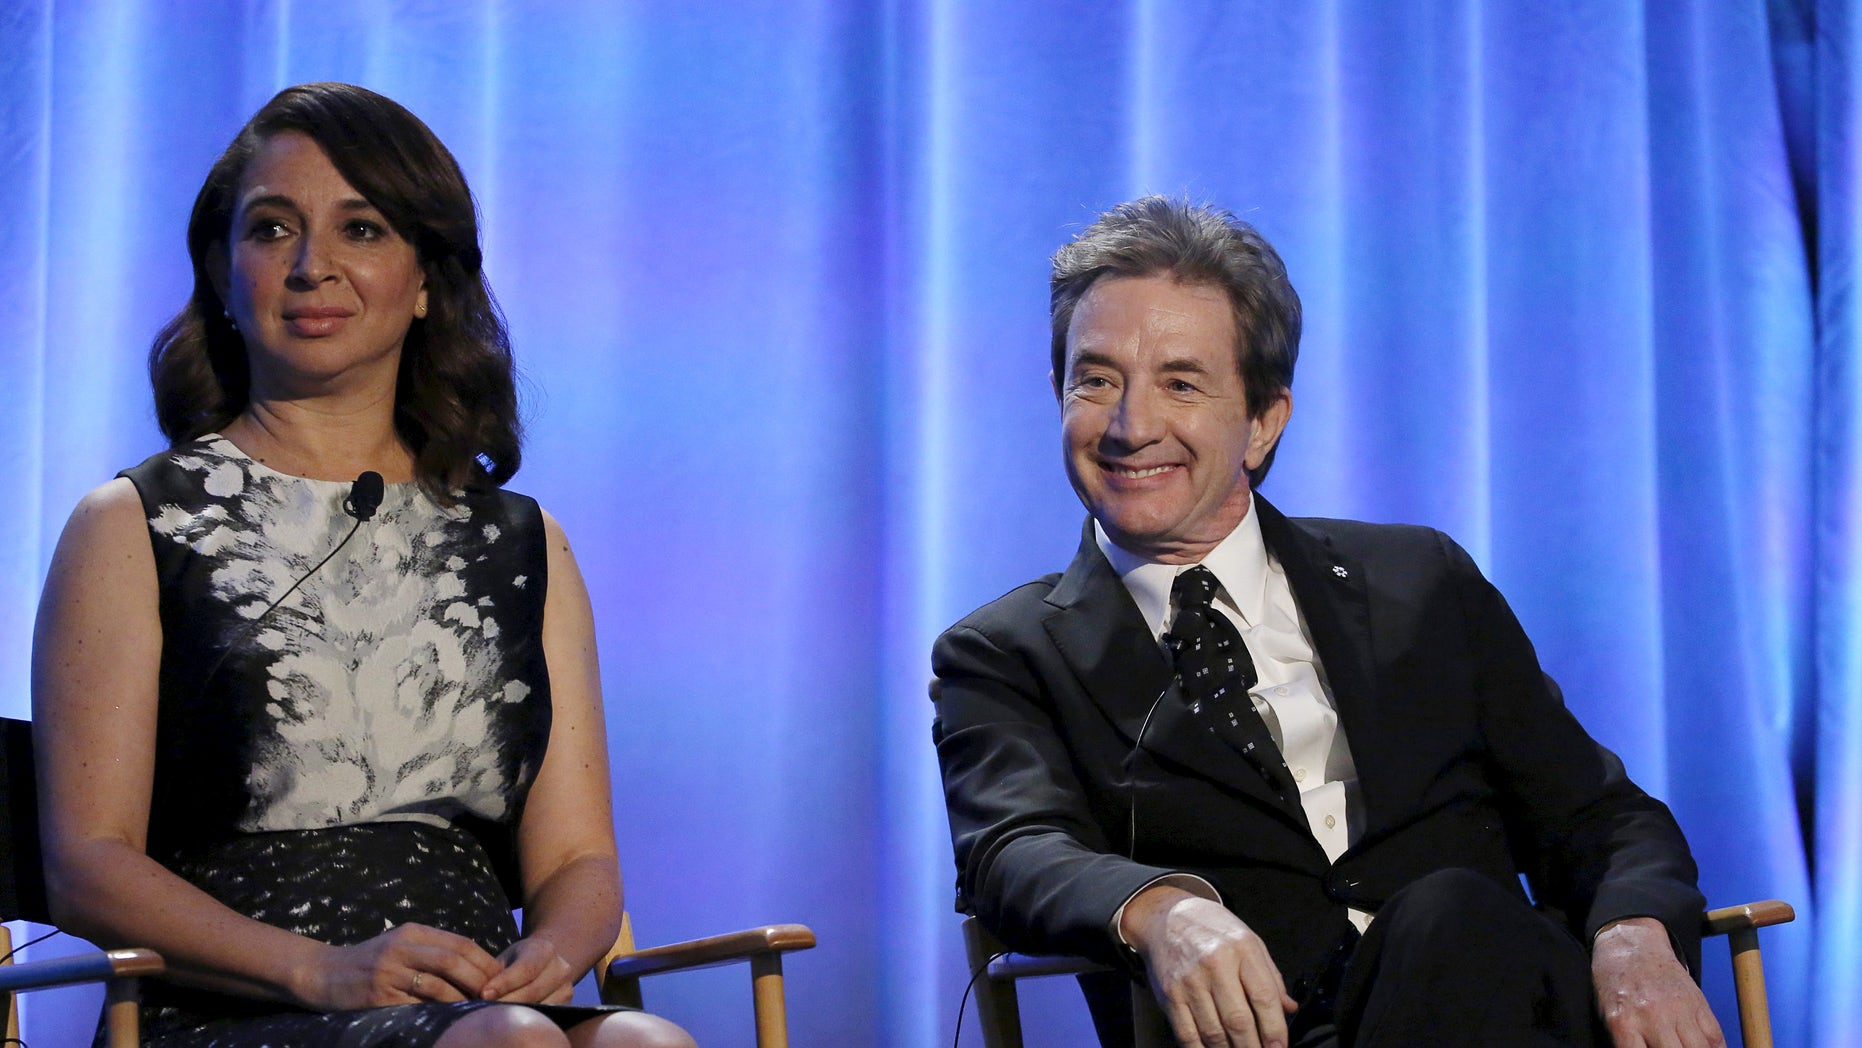 """Producers and hosts Martin Short and Maya Rudolph attend a panel for the television series """"Maya & Marty"""" during the NBCUniversal summer press day in Westlake Village, California April 1, 2016.    REUTERS/Mario Anzuoni - RTSD7T7"""